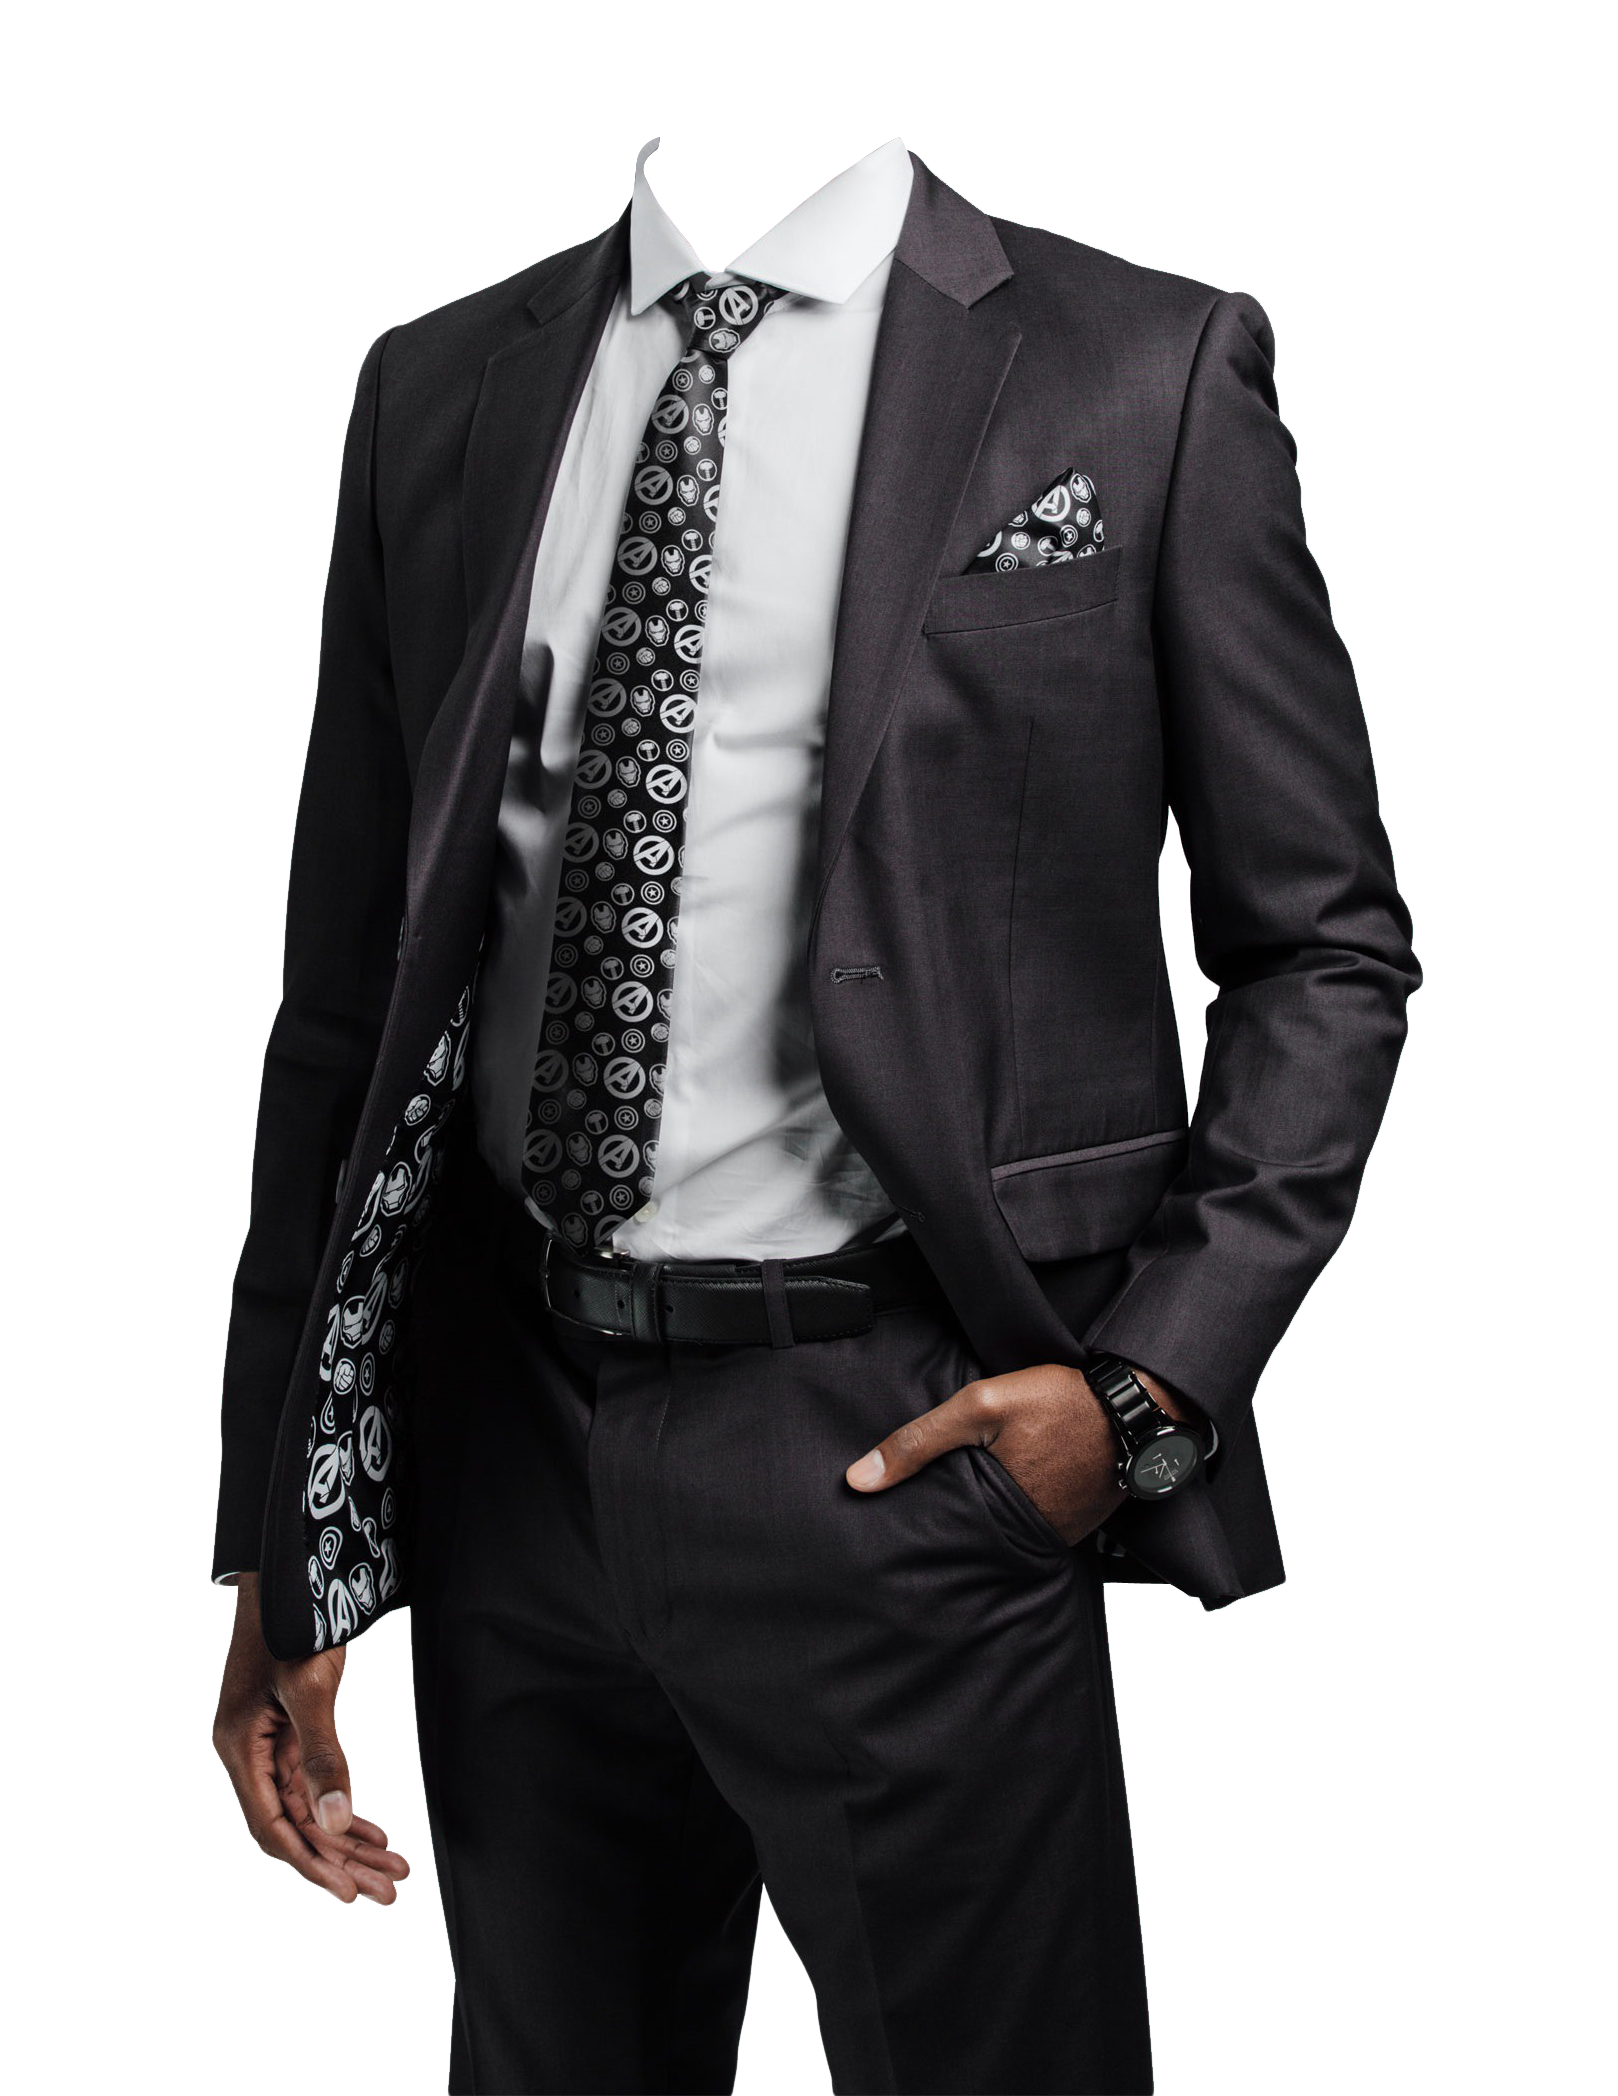 Download Suits Png Images